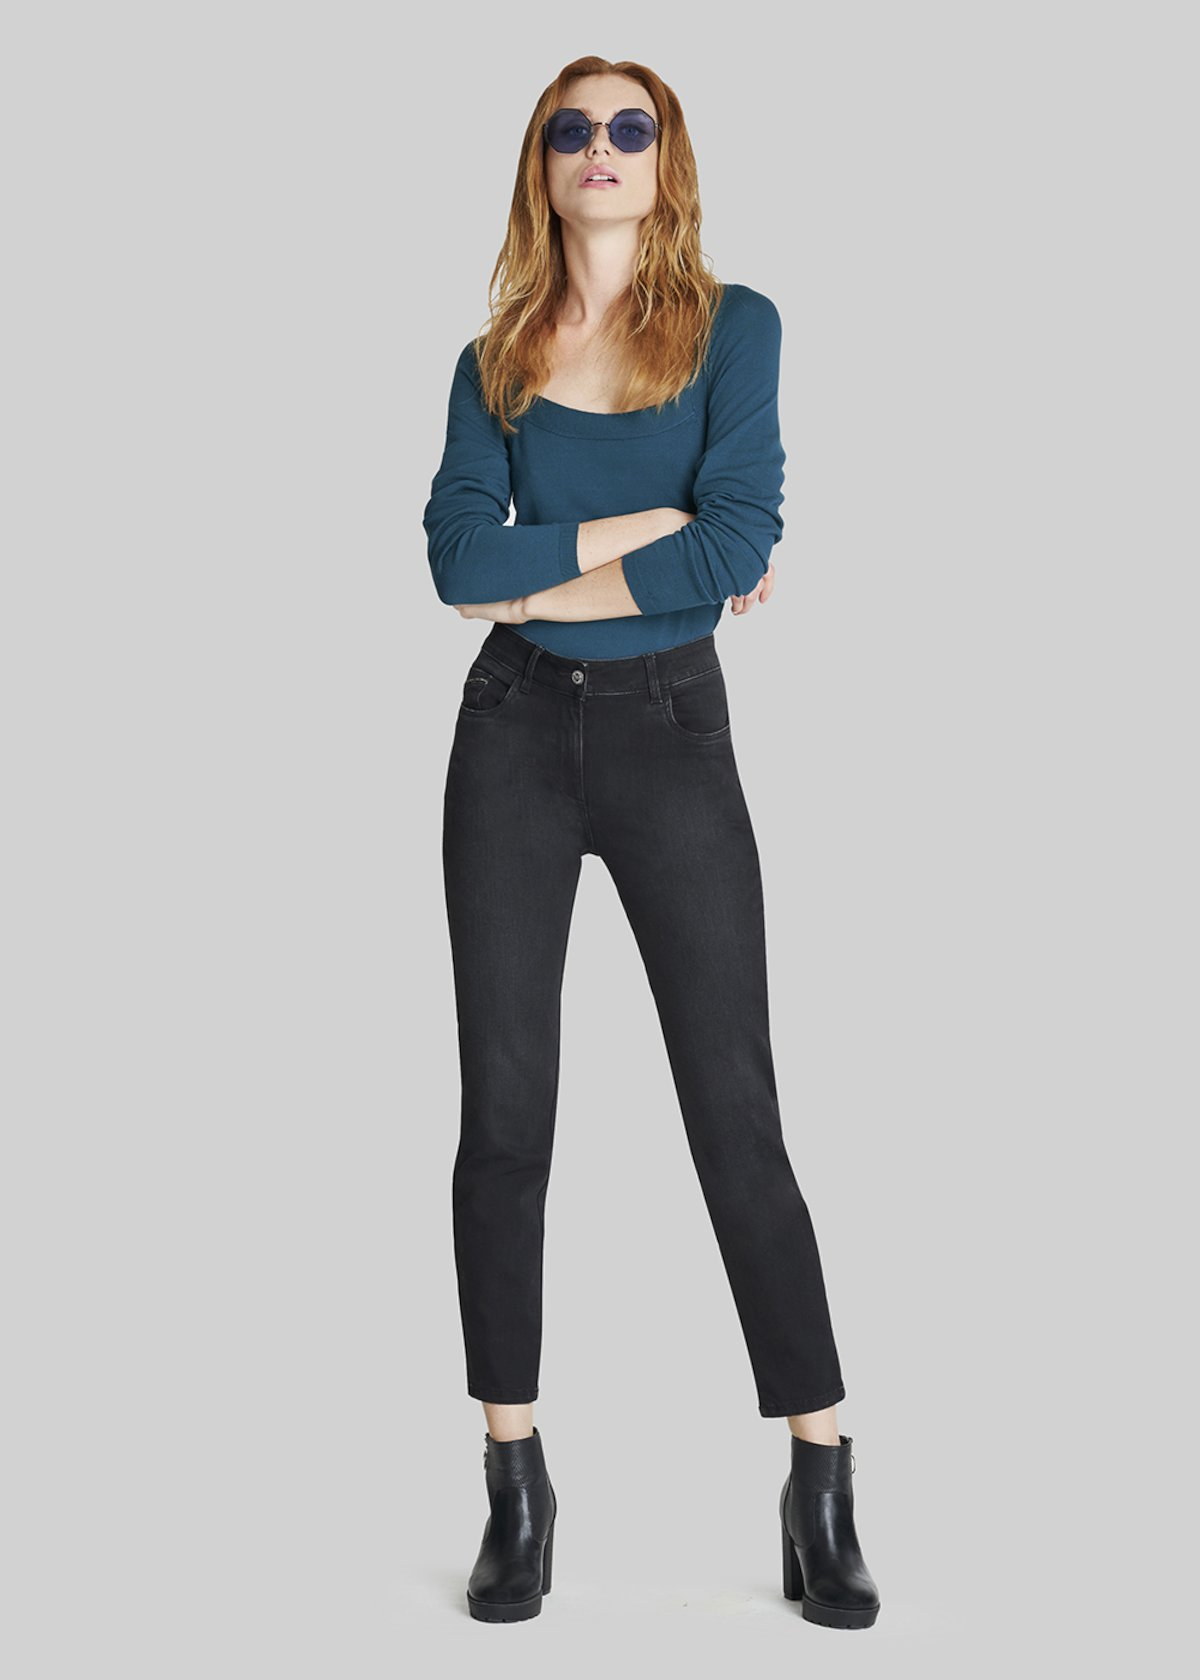 Denim Dagor trousers with rhinestones inserts - Black